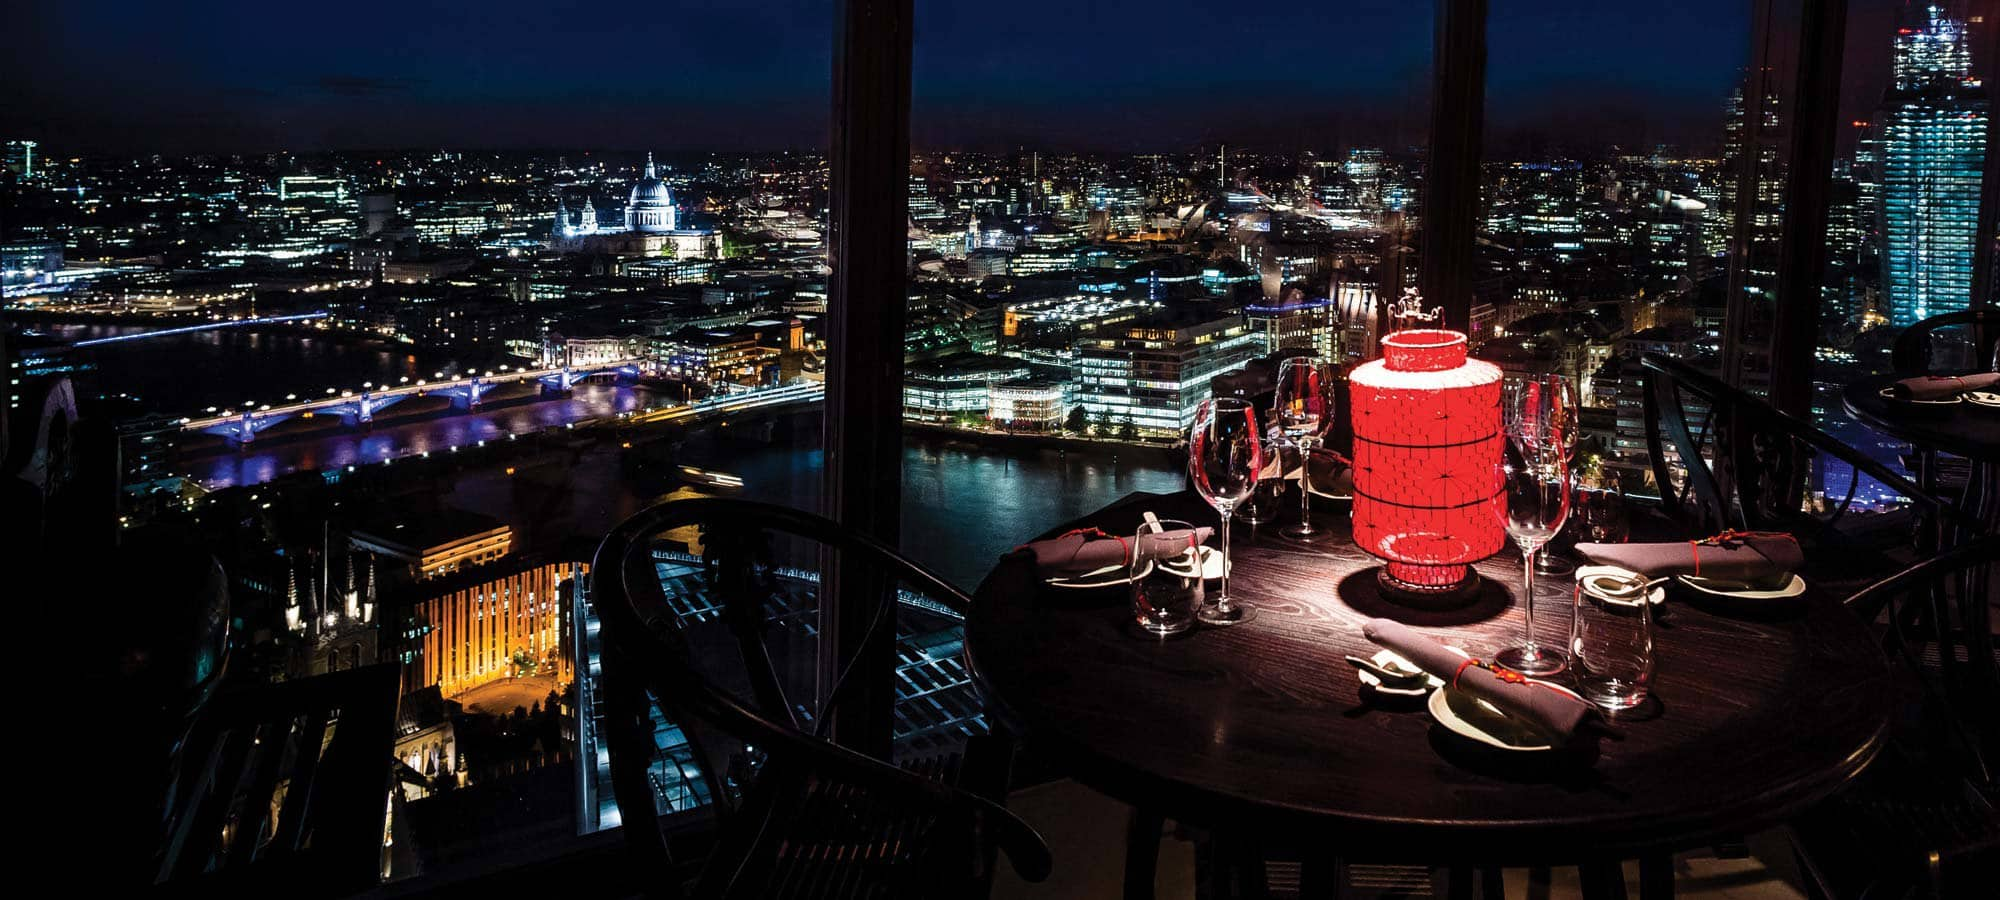 Hutong é um restaurante chinês localizado no The Shard